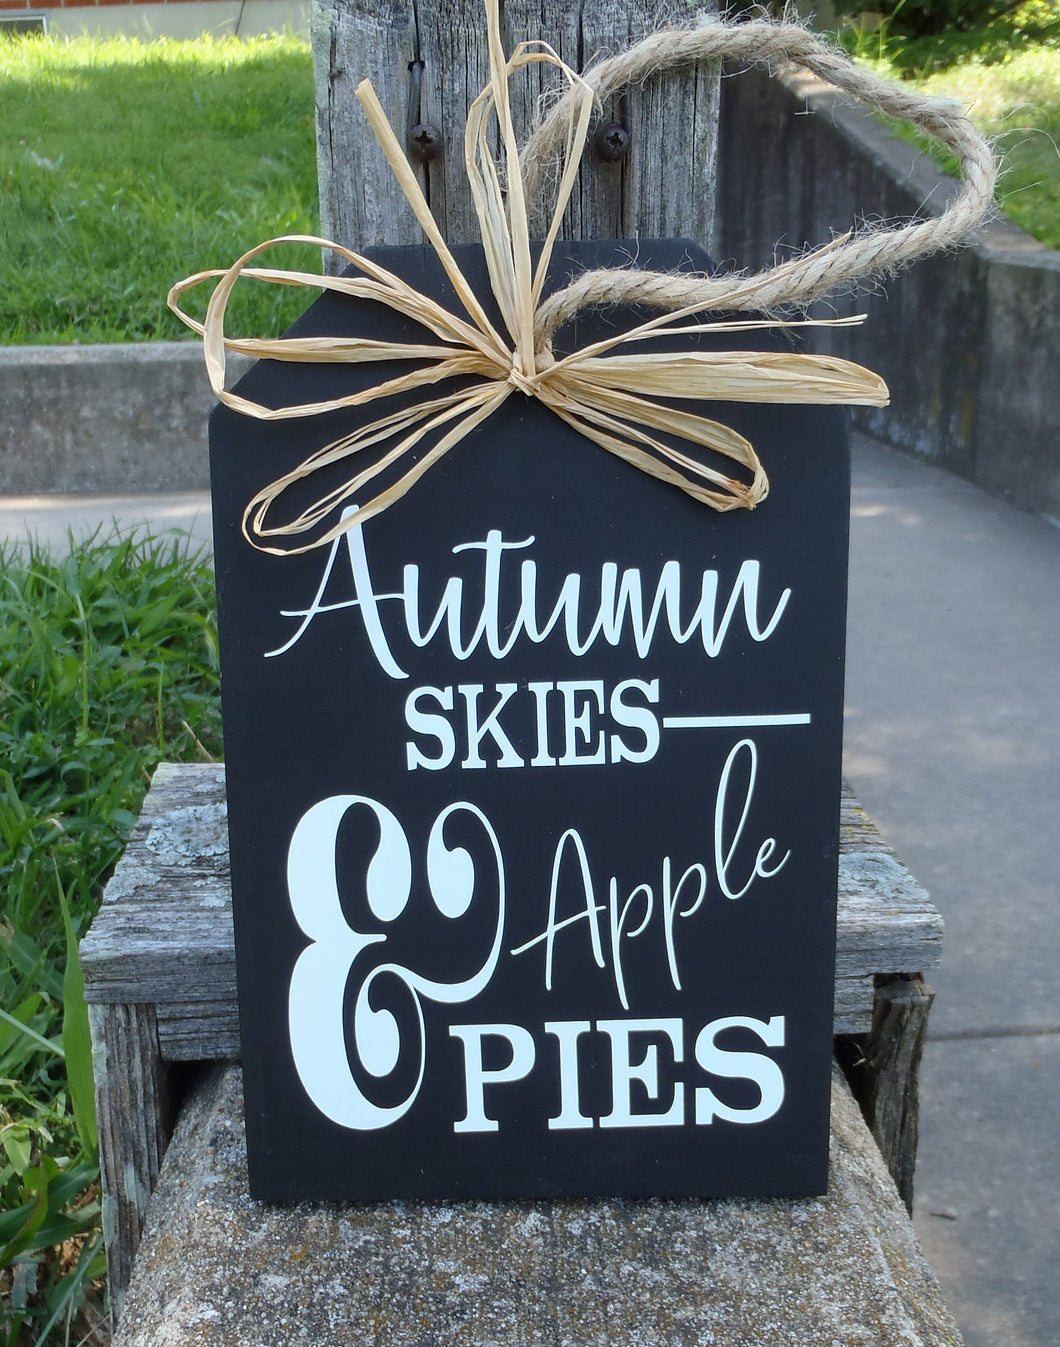 Fall Signs Harvest Sign Autumn Skies Pumpkin Pies Wood Tag Signs Front Door Decor Entry Porch Wall Decor Wreath Accent Outdoor Decorations